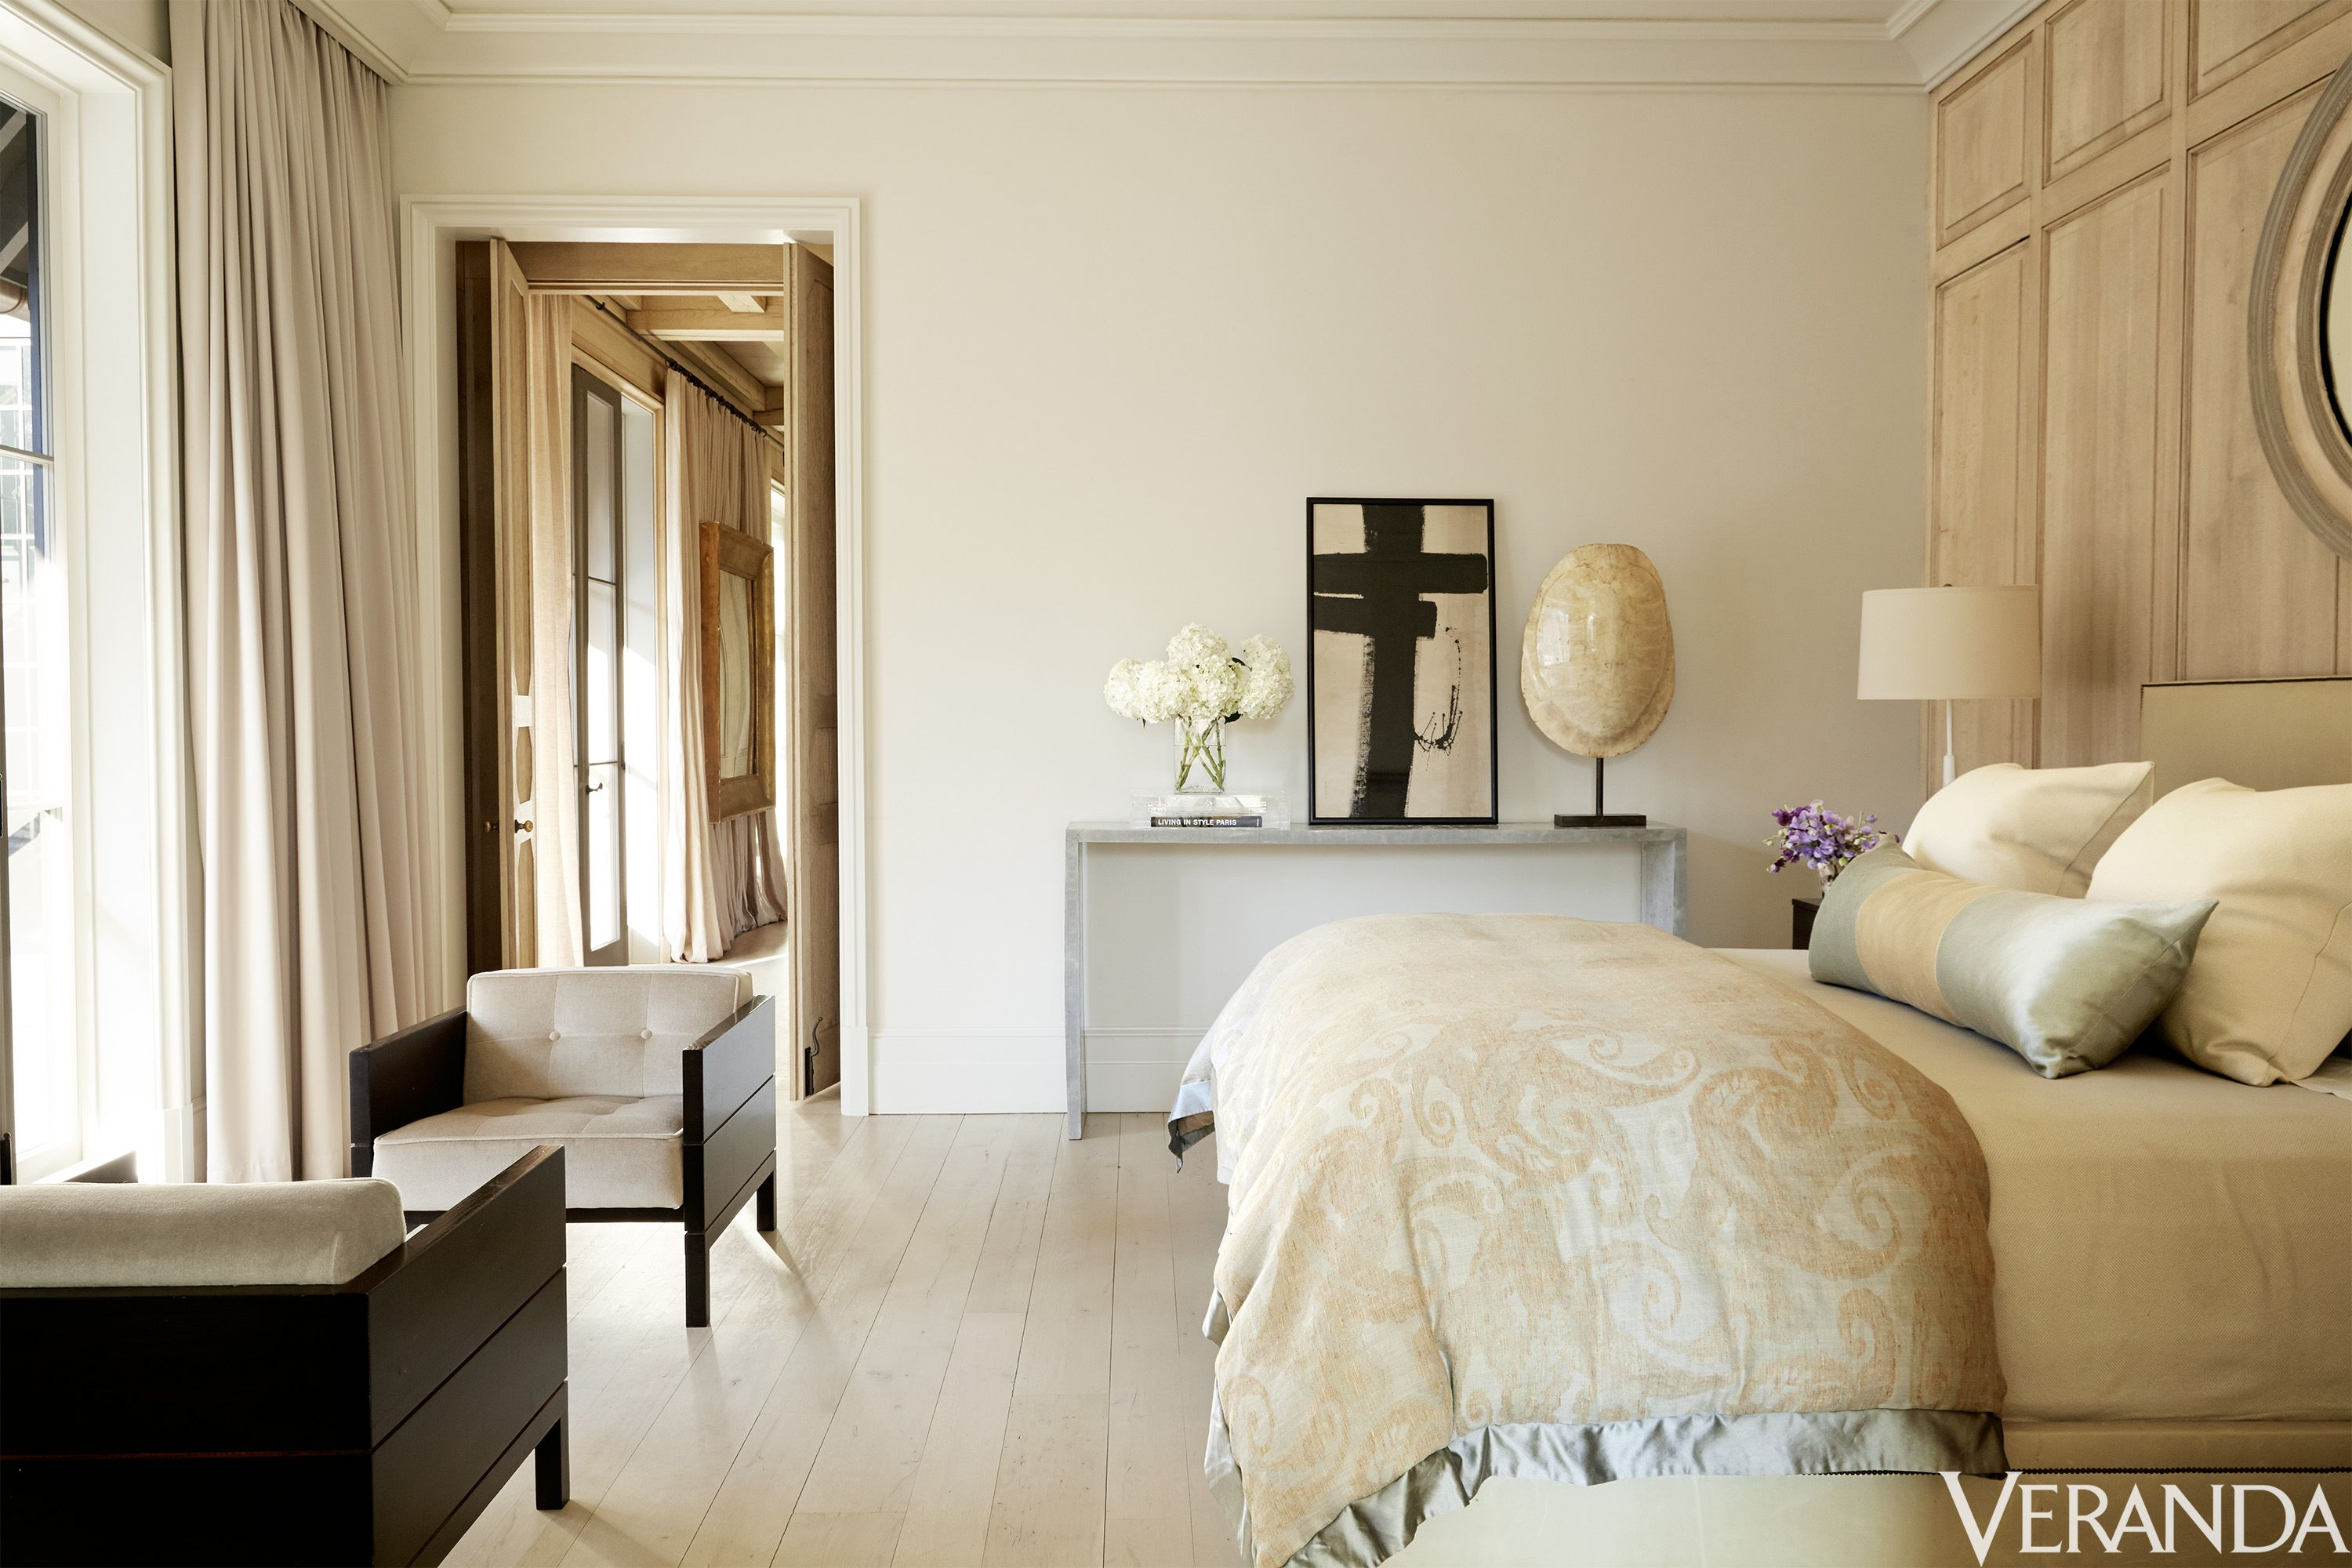 55 Most Beautiful Bedrooms To Inspire Your Next Makeover Beautiful Bedrooms Serene Bedroom Bedroom Interior Most beautiful bedrooms images